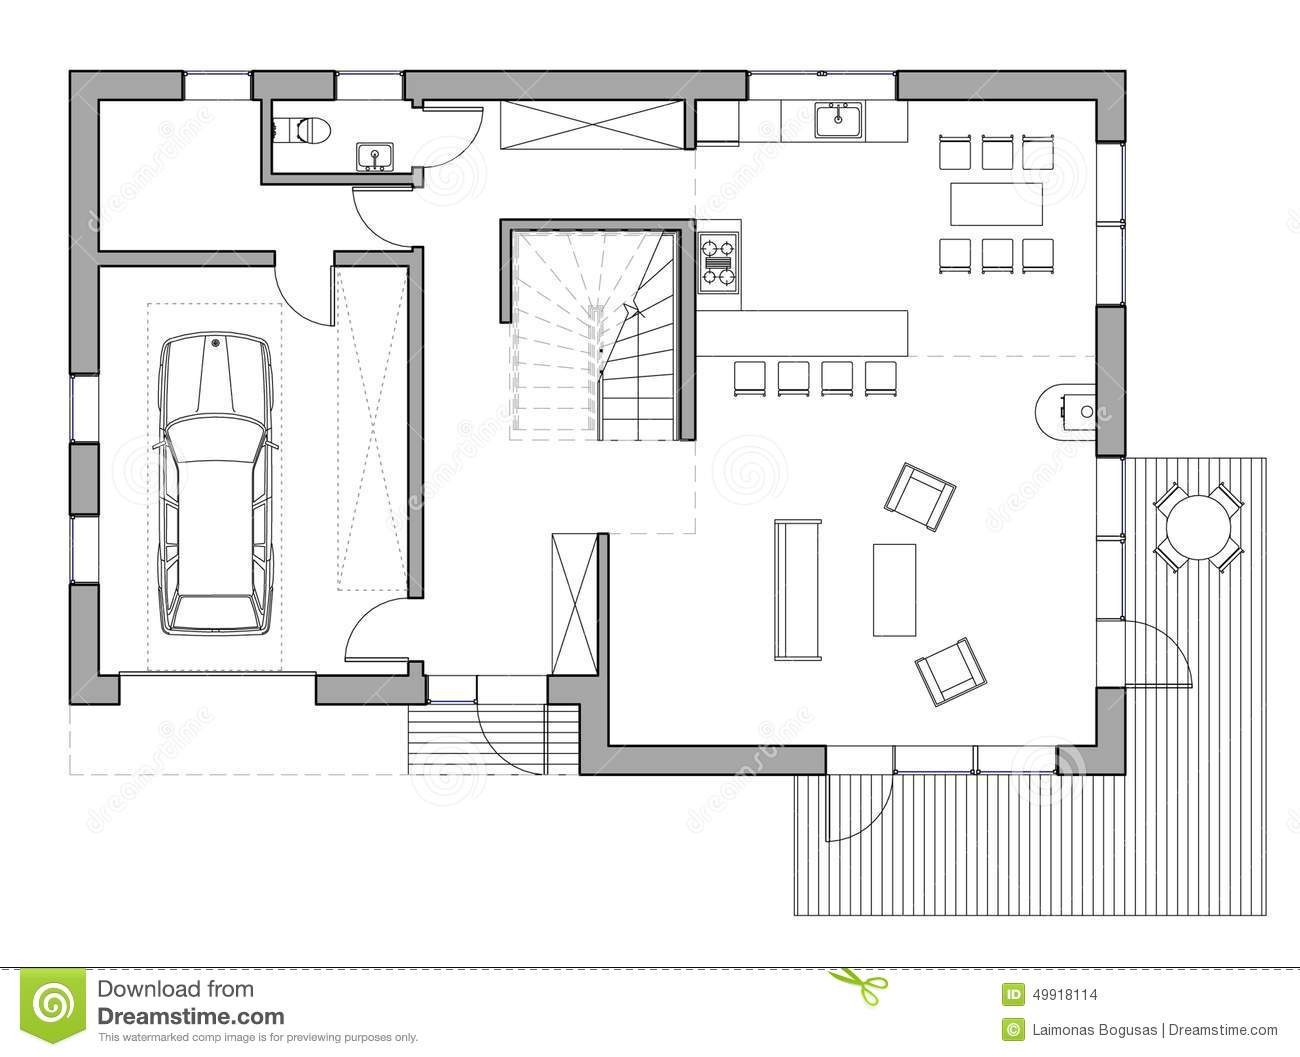 Dessin maison unifamiliale illustration stock image for Piani di progettazione del garage